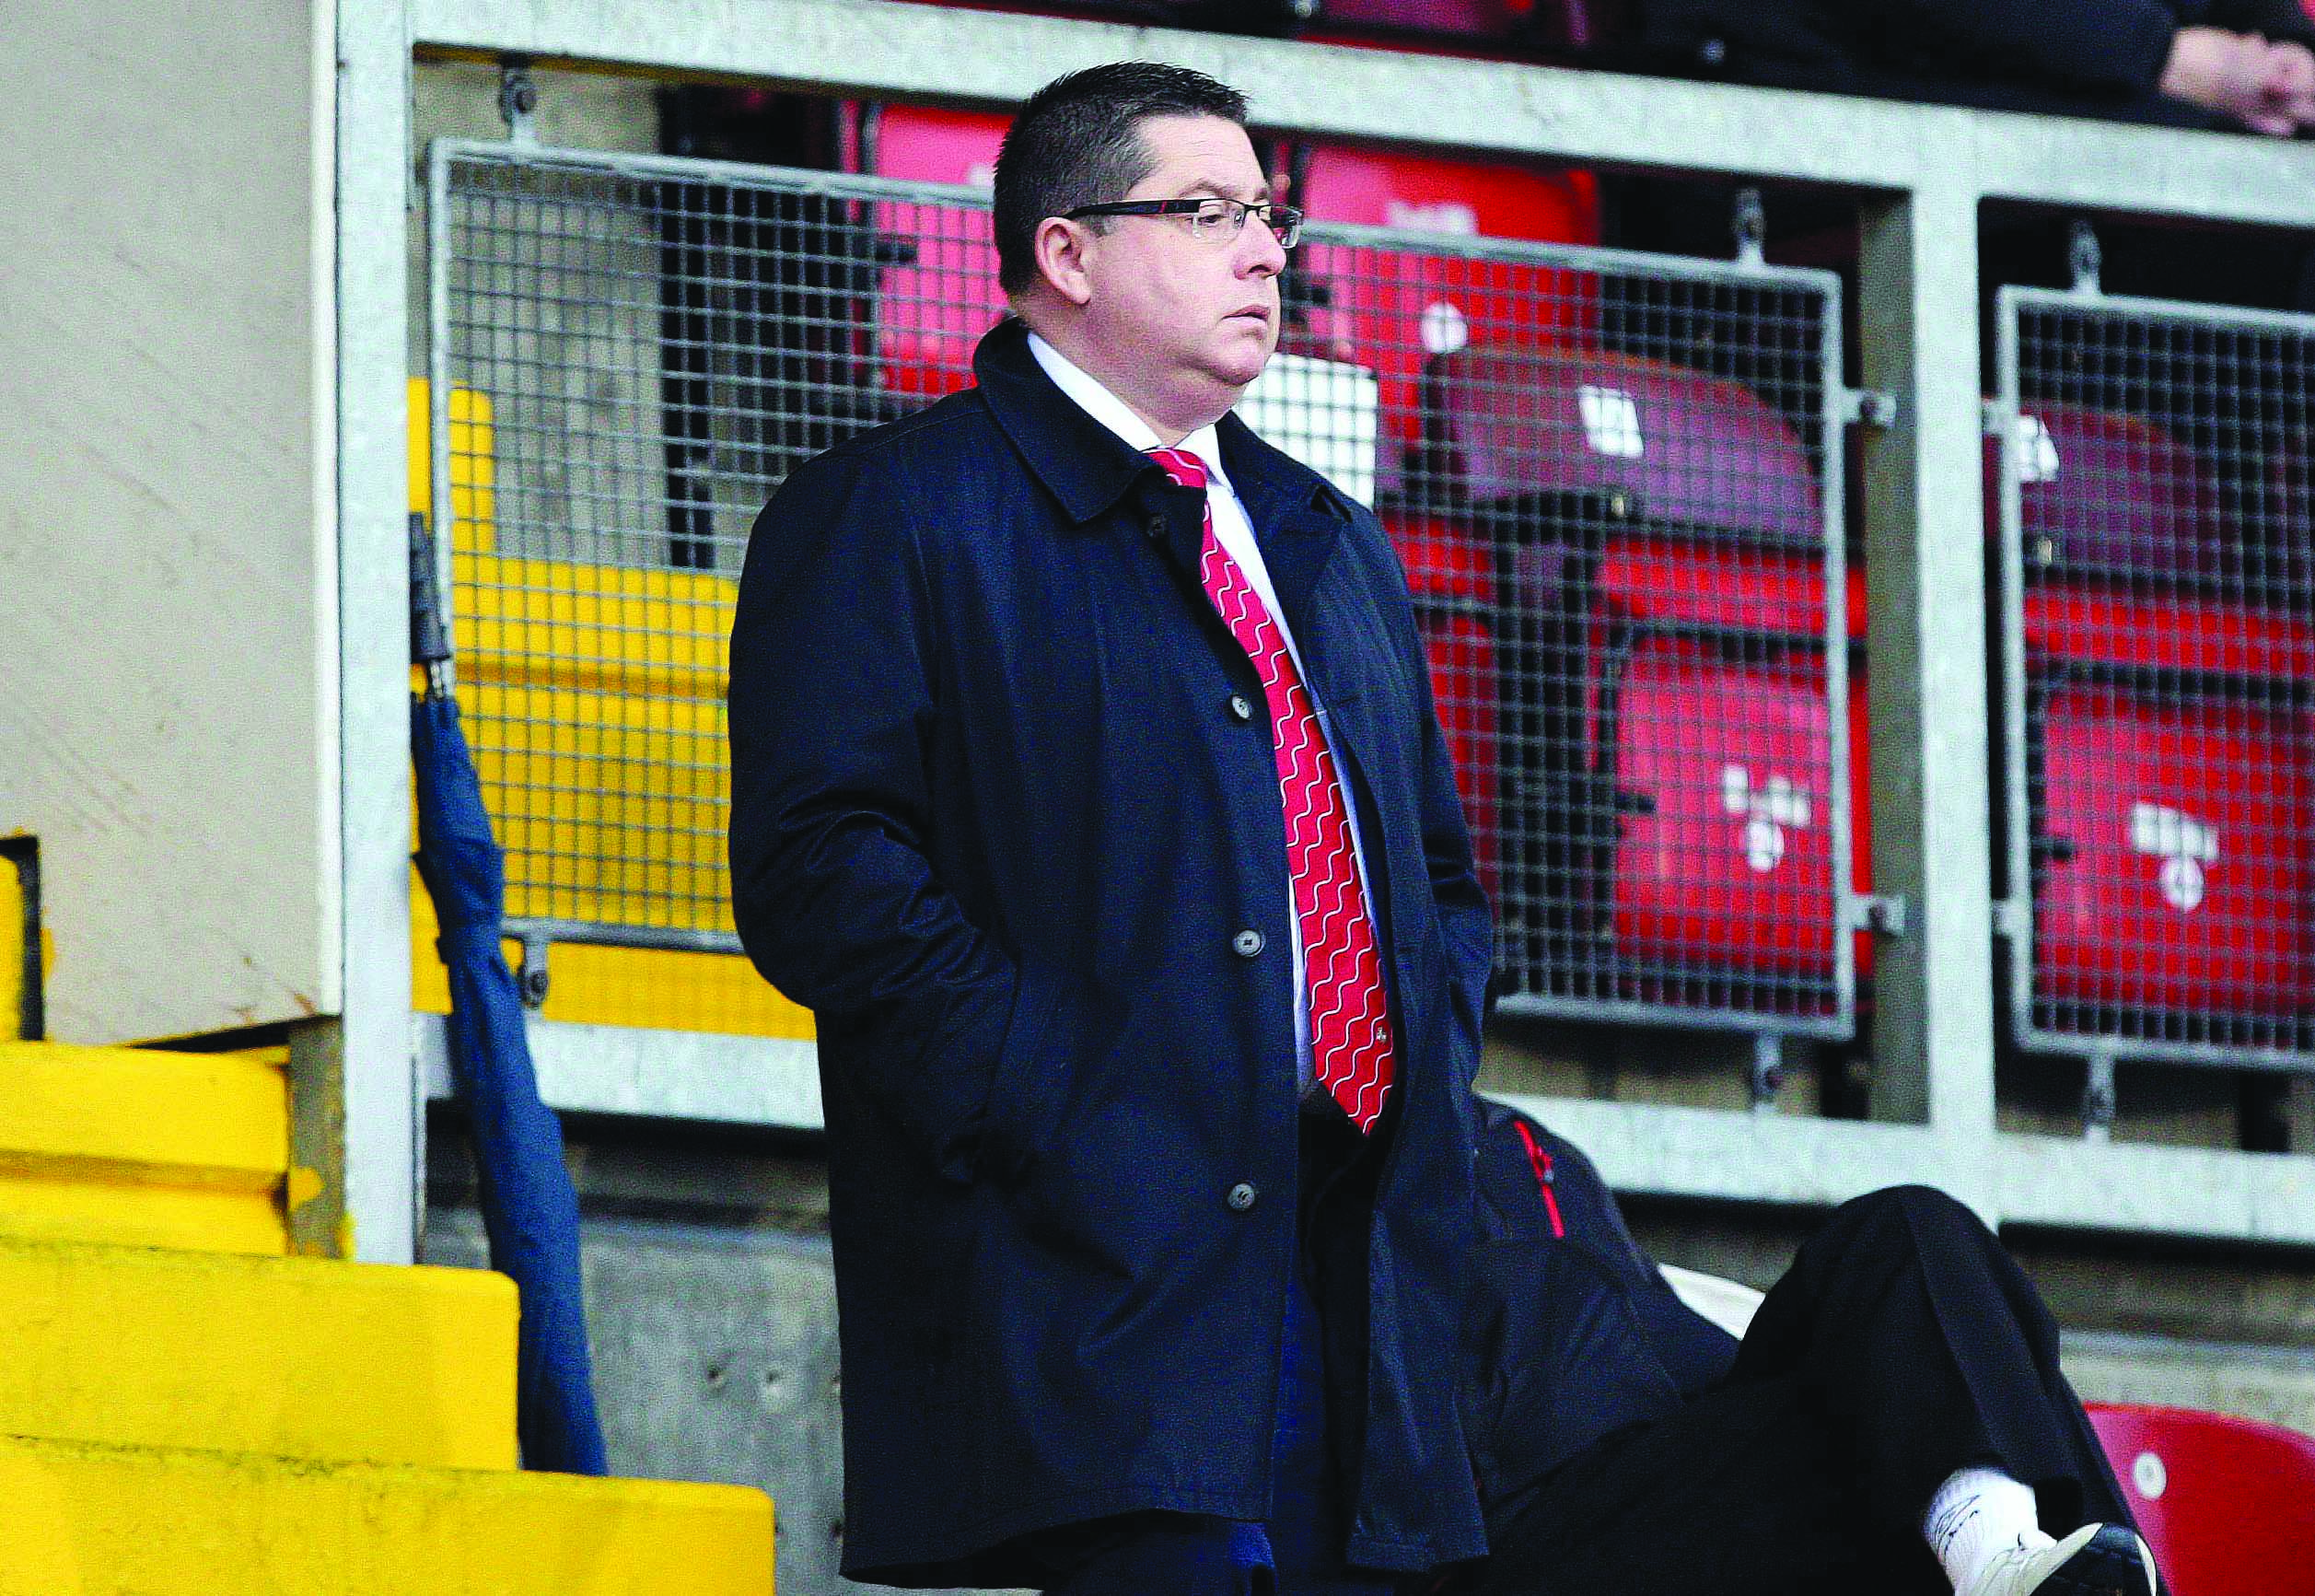 Gerard Lawlor will step down as chairman of Cliftonville Football Club next month after being appointed at the NIFL's first chief executive